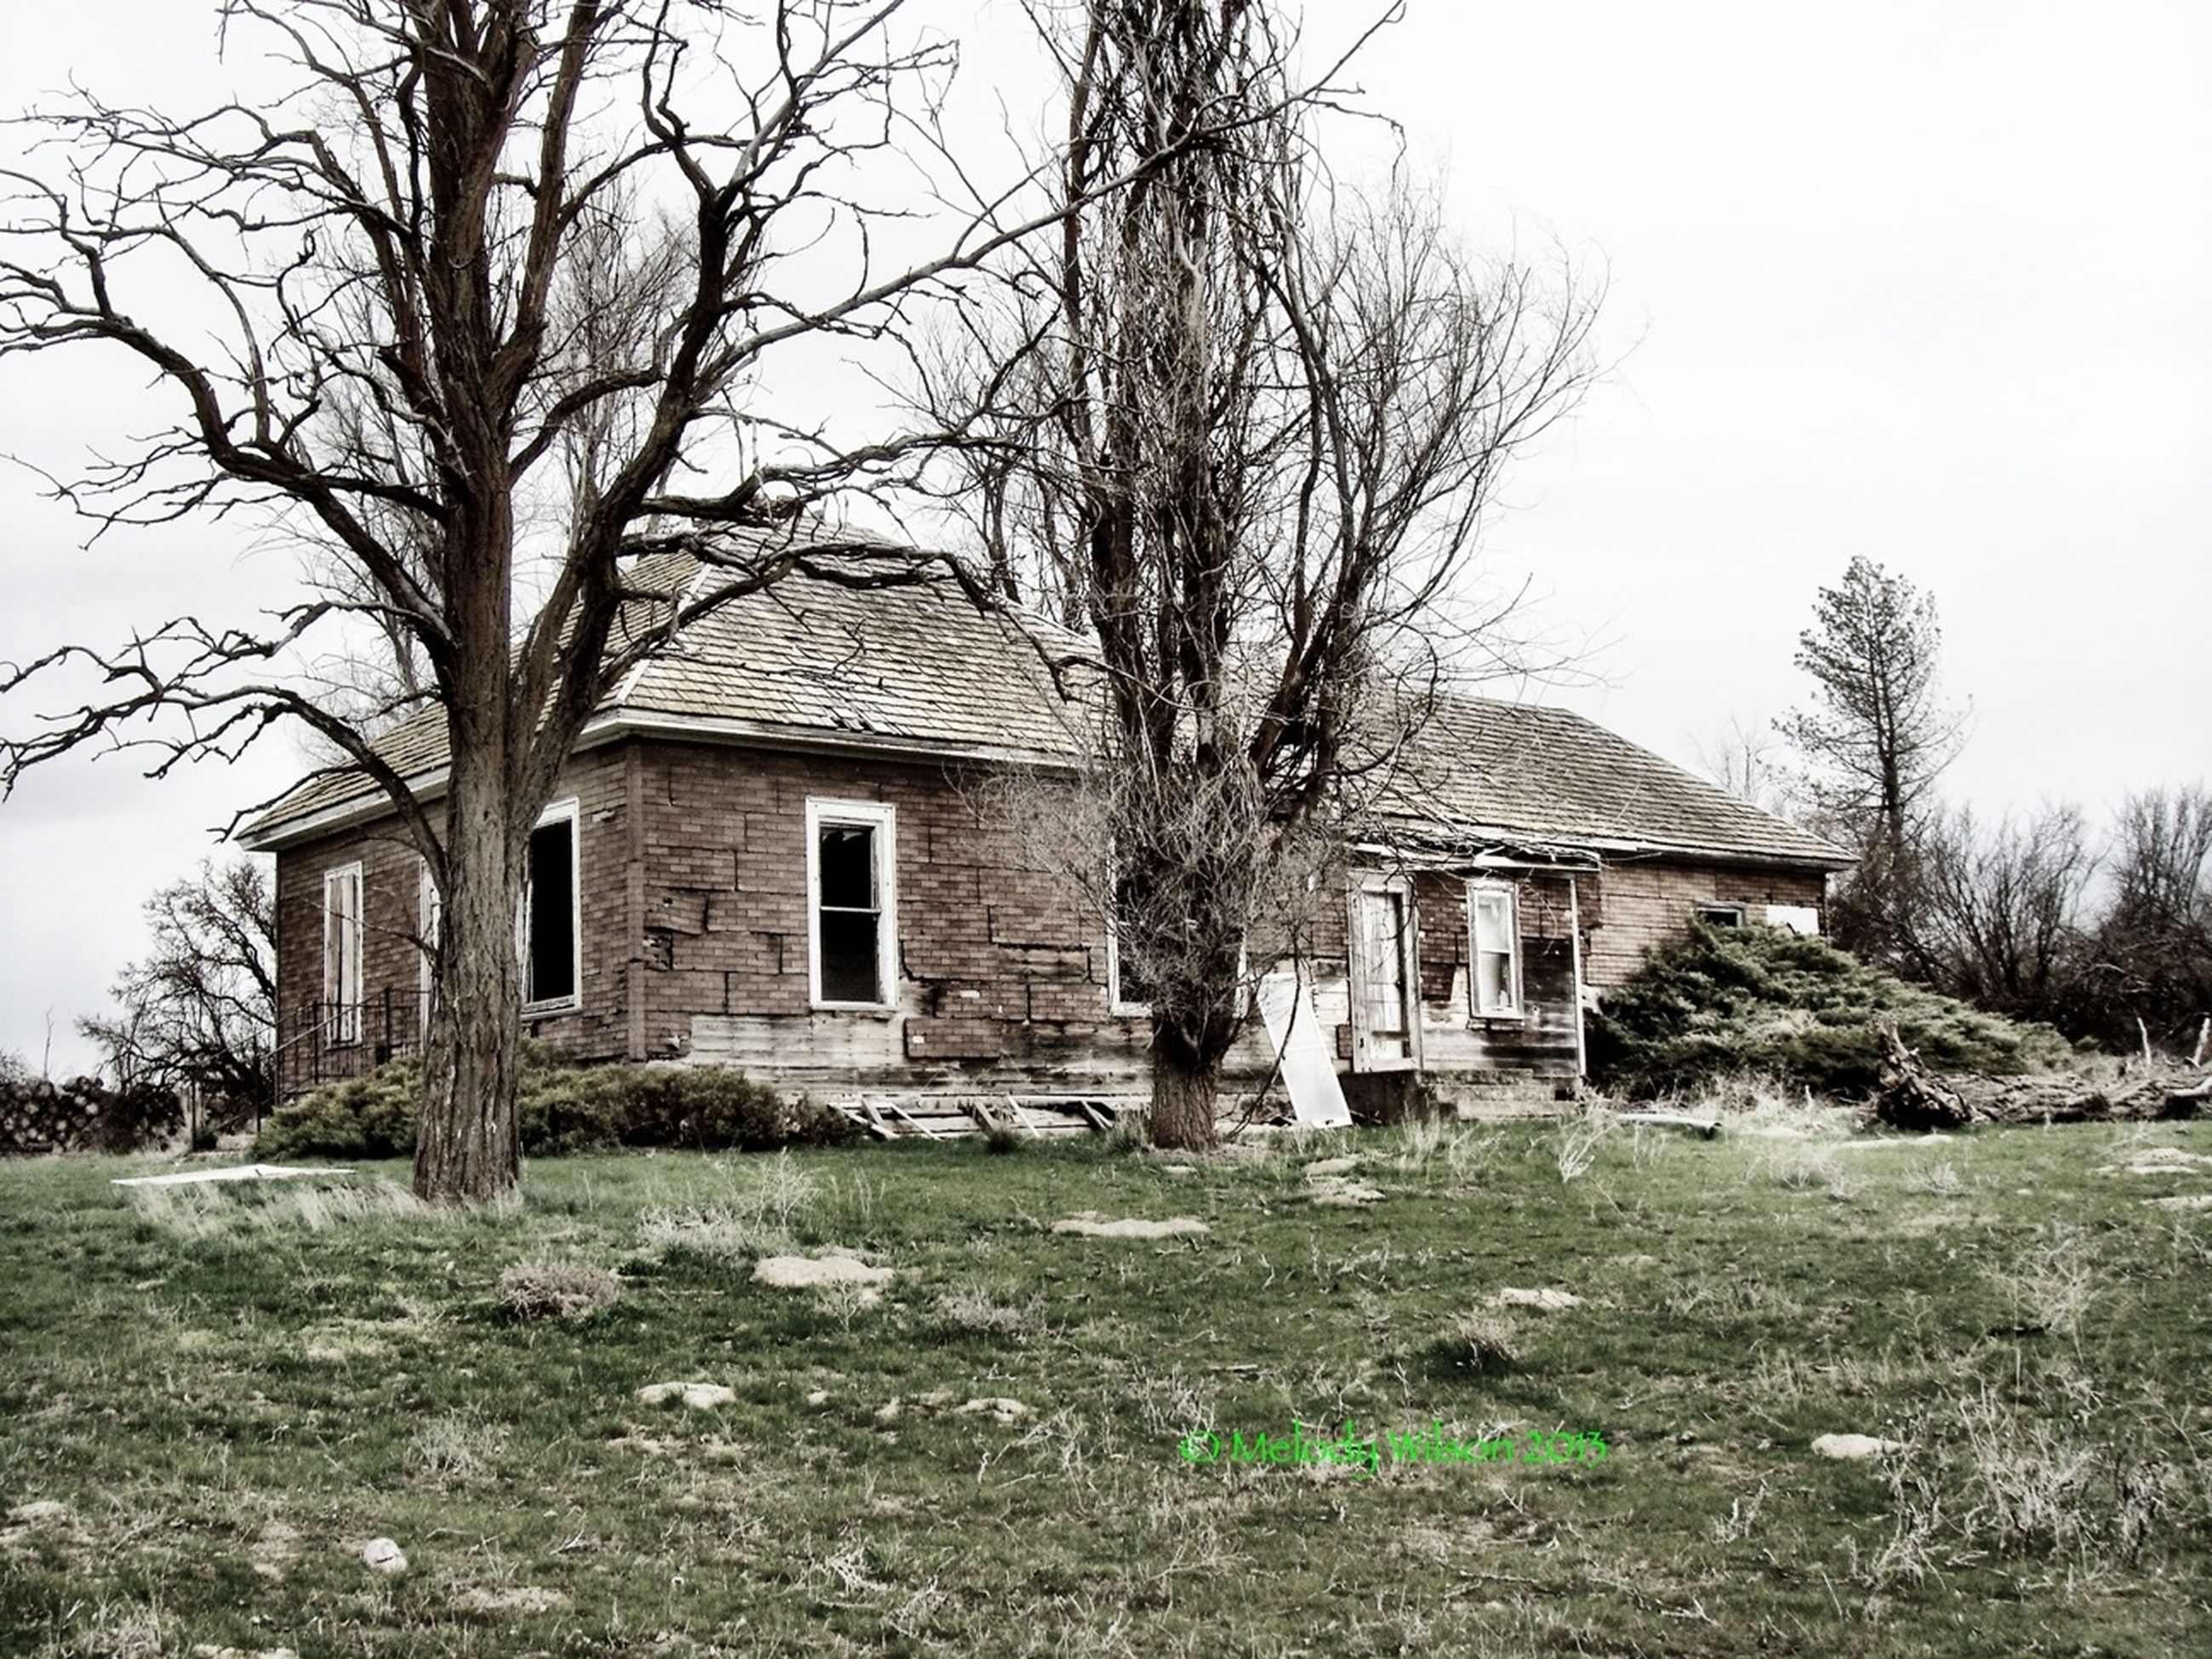 architecture, built structure, building exterior, abandoned, old, obsolete, damaged, run-down, house, tree, bare tree, deterioration, grass, clear sky, field, weathered, old ruin, bad condition, ruined, destruction